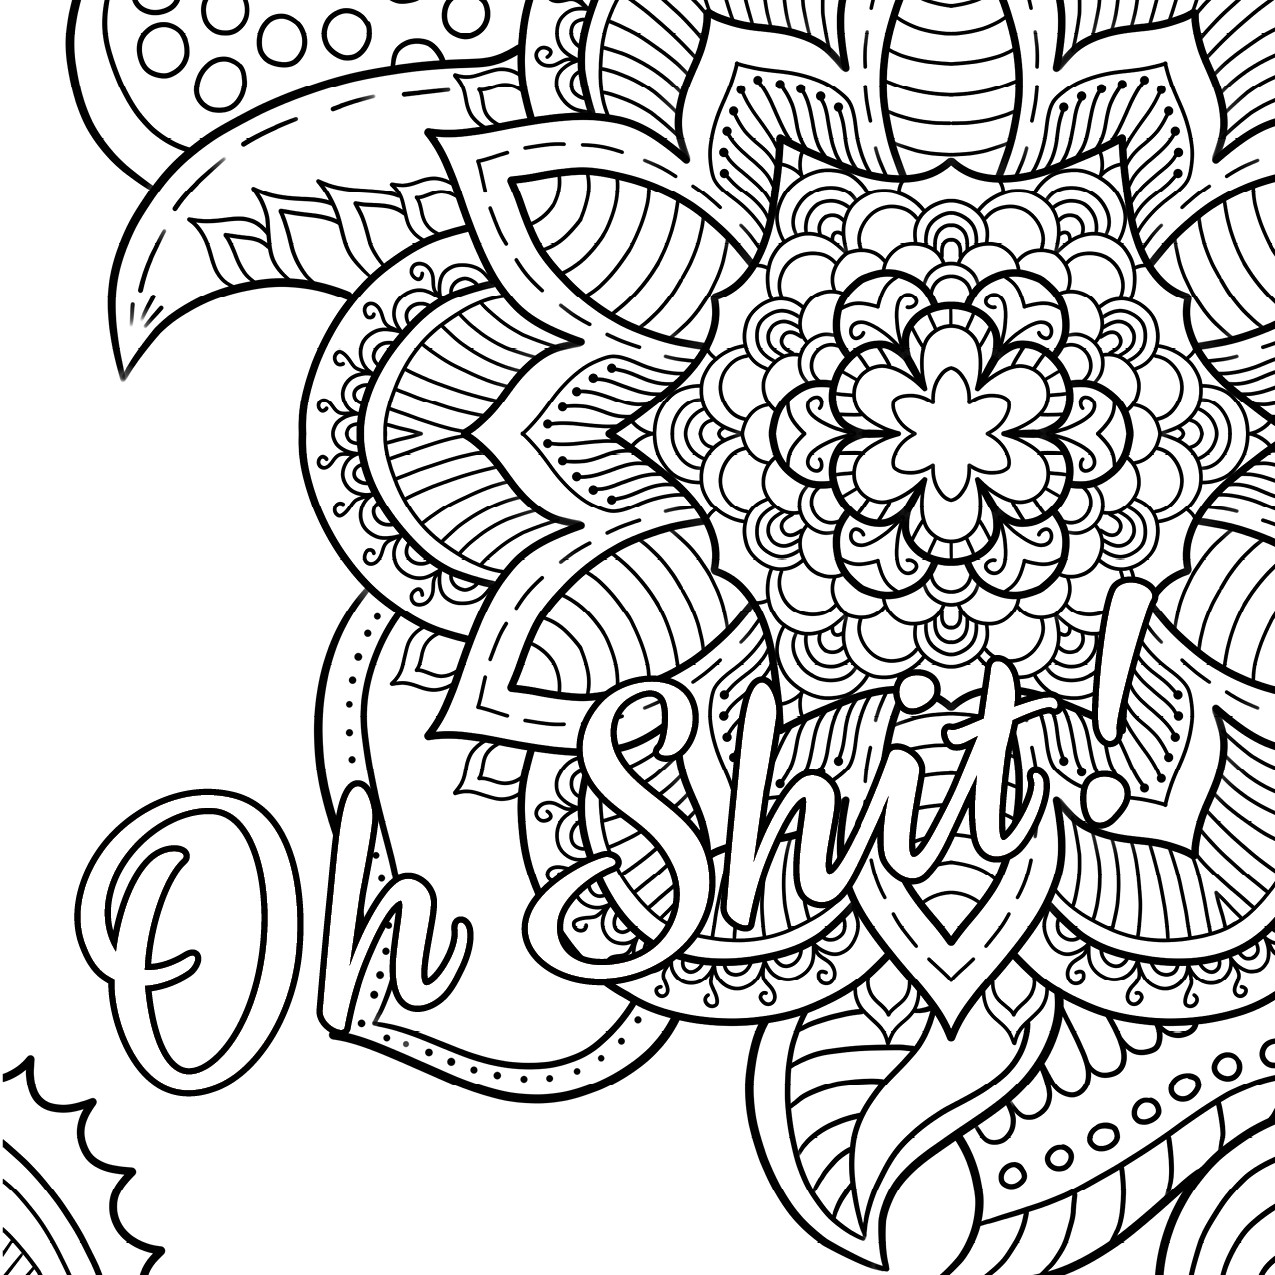 Cuss Word Coloring Book  Oh Shit Free Coloring Page Swear Word Coloring Book